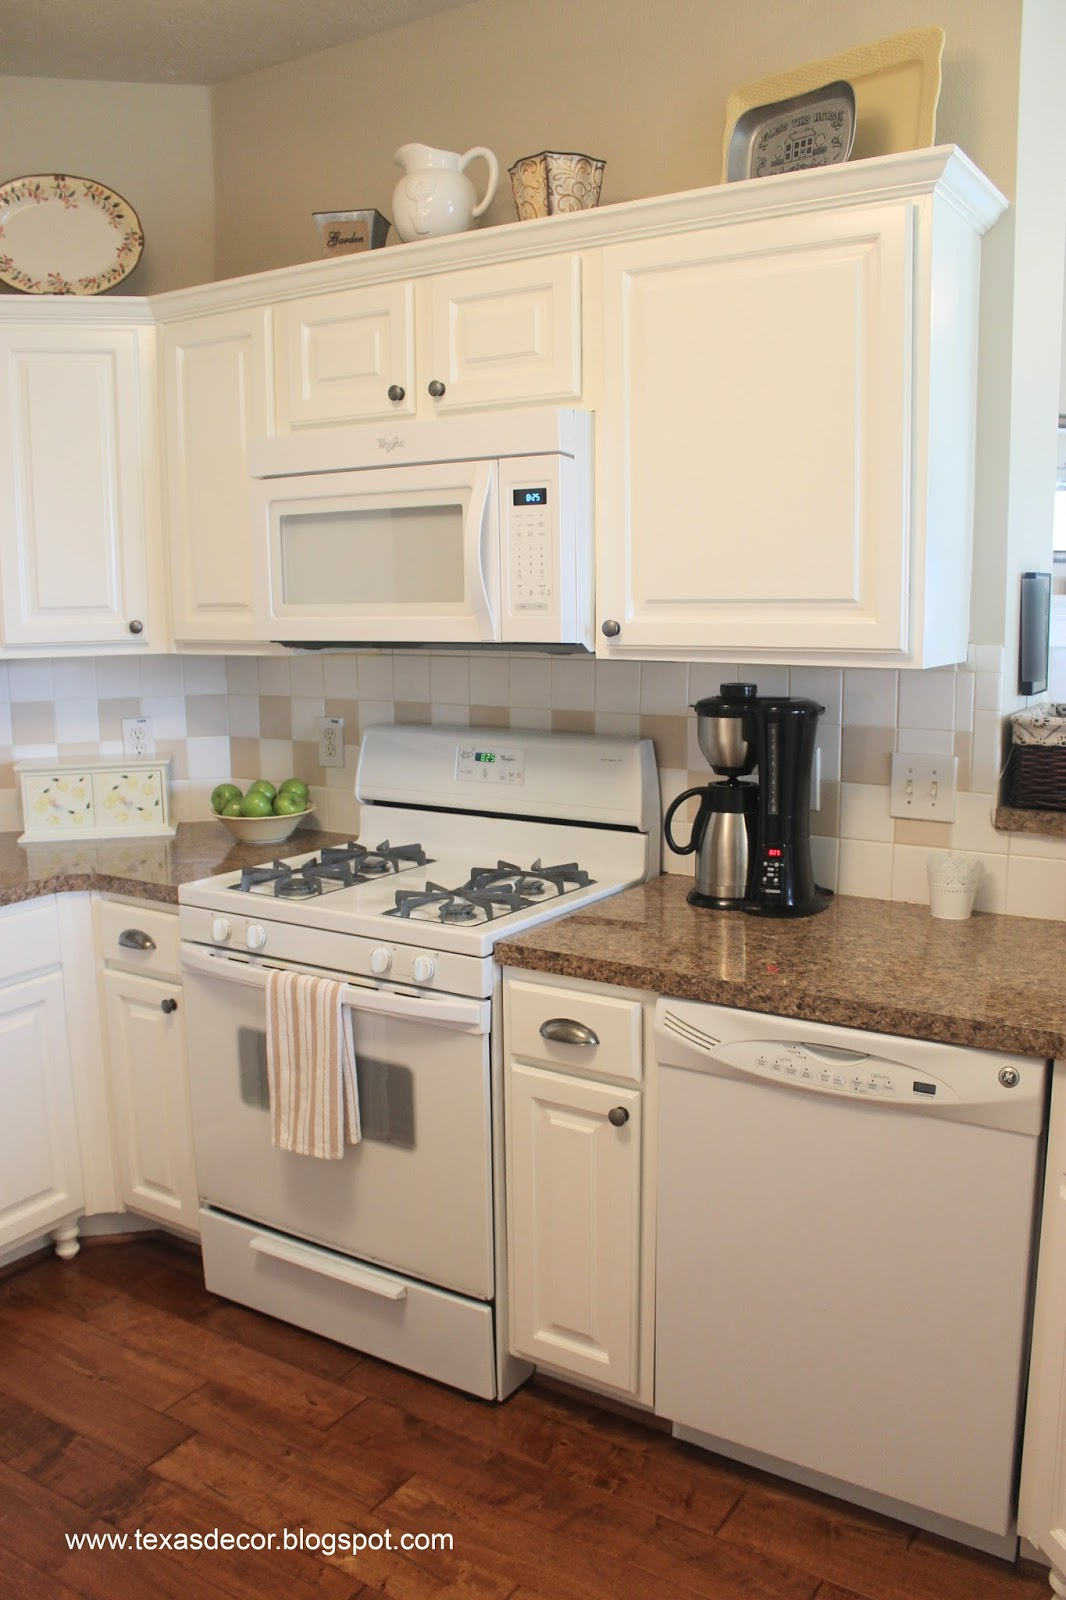 White Paint Colors For Kitchen Cabinets Texas Decor Painted Kitchen Cabinet Reveal